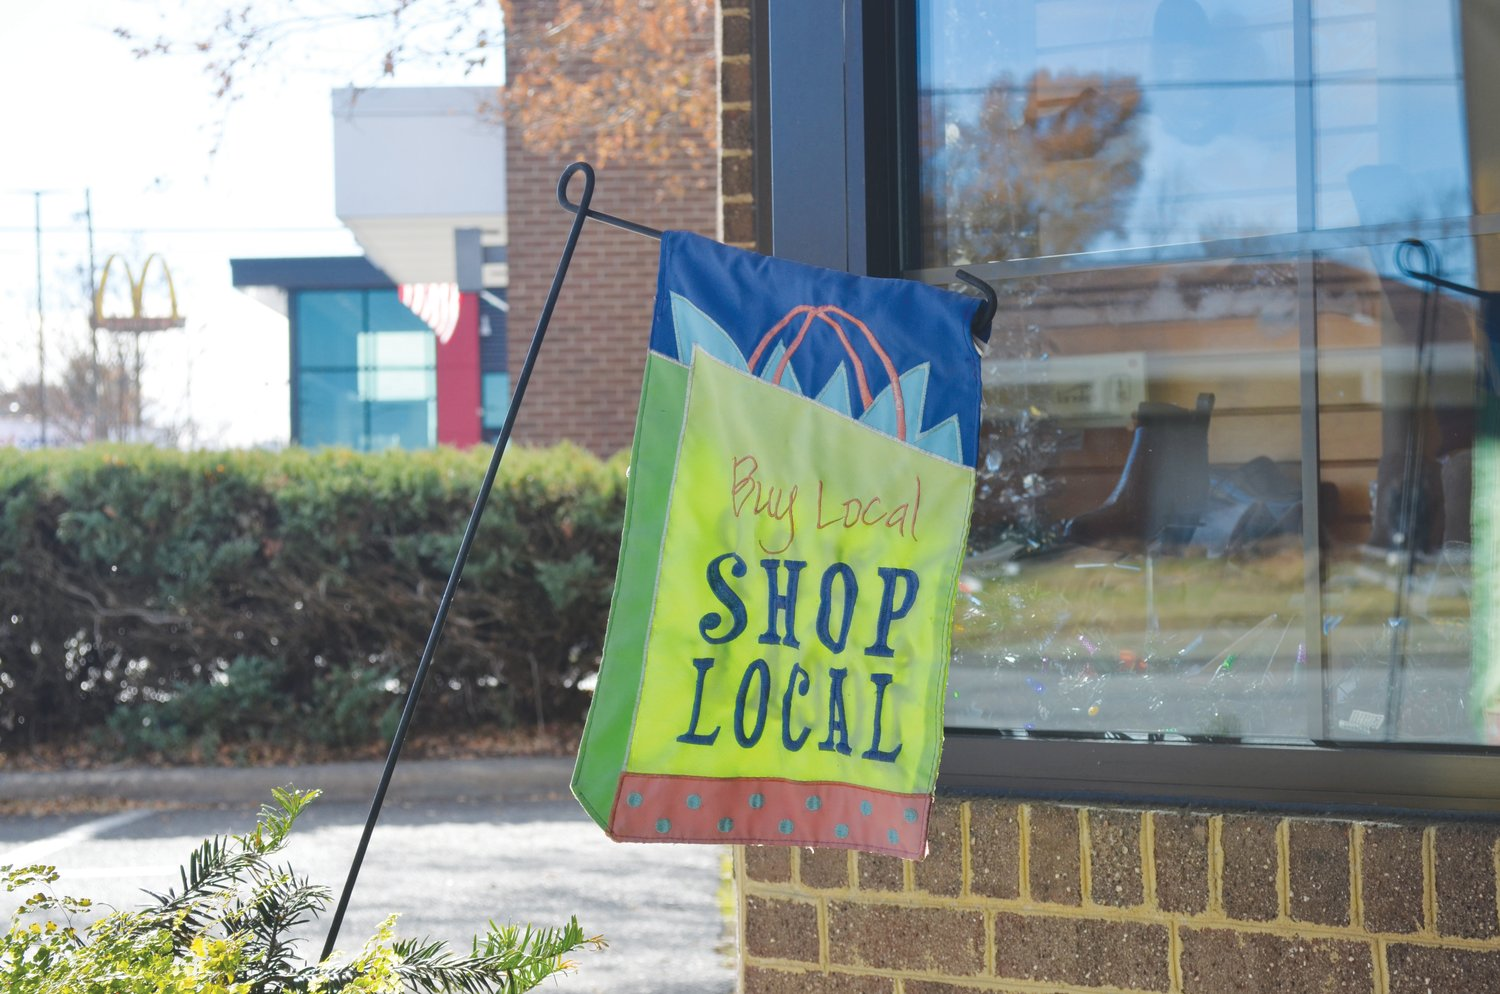 A flag at The Bootery Ltd. encourages shoppers to support local businesses.